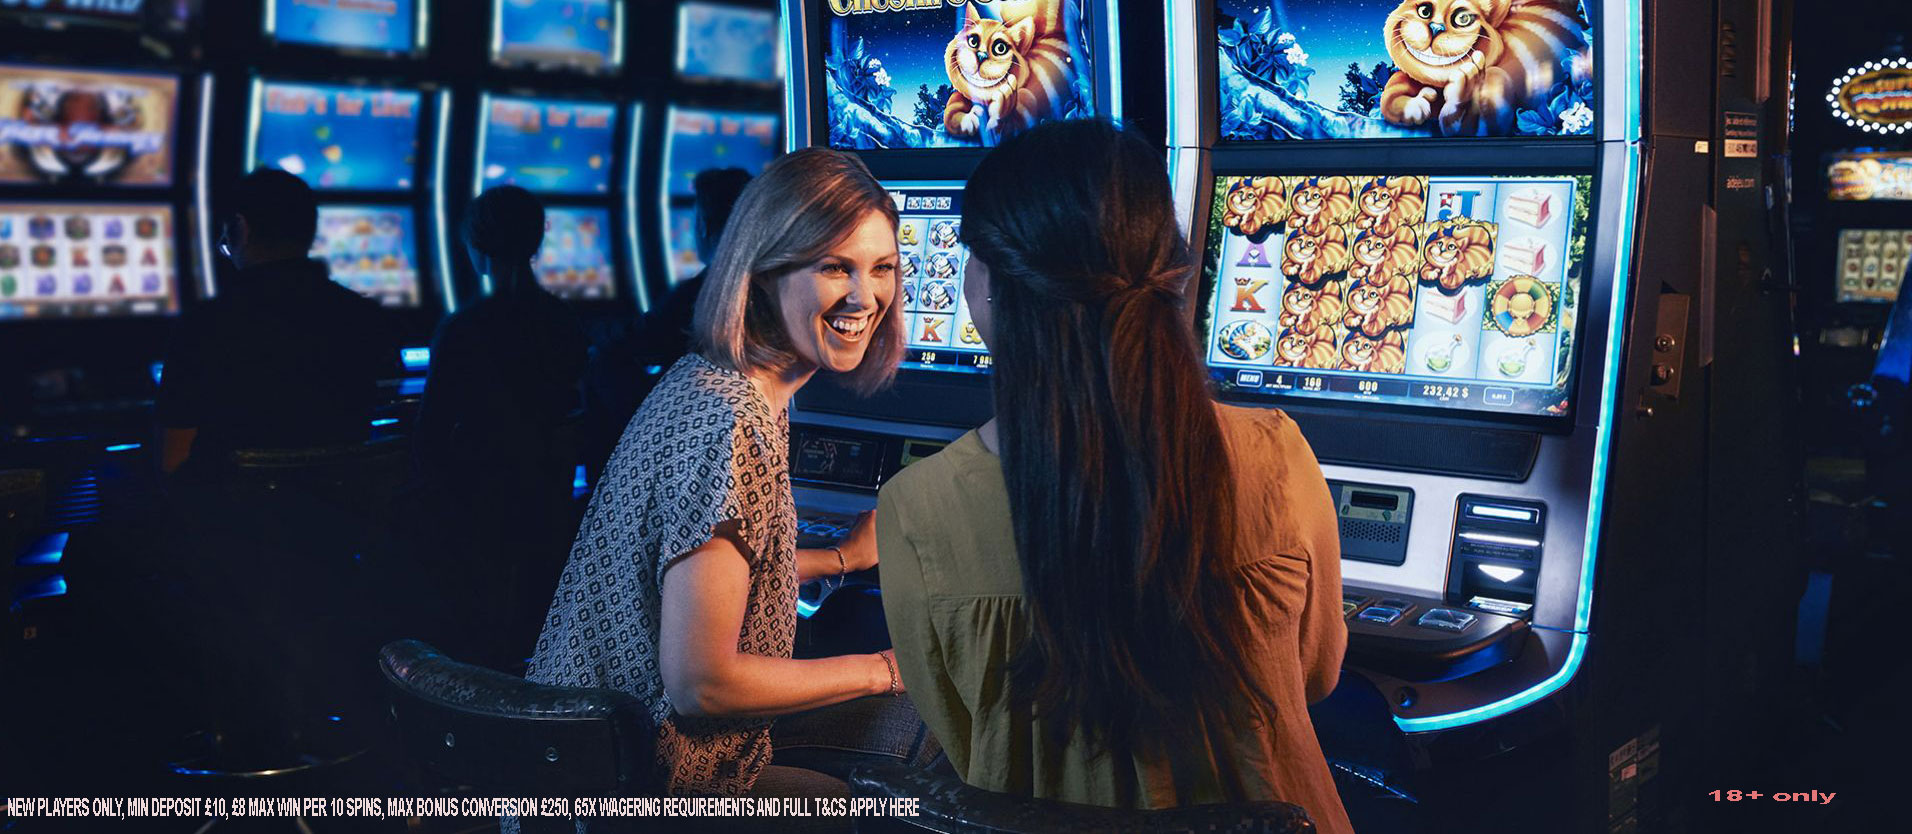 What Are The Best Time To Play Online Slots Games?